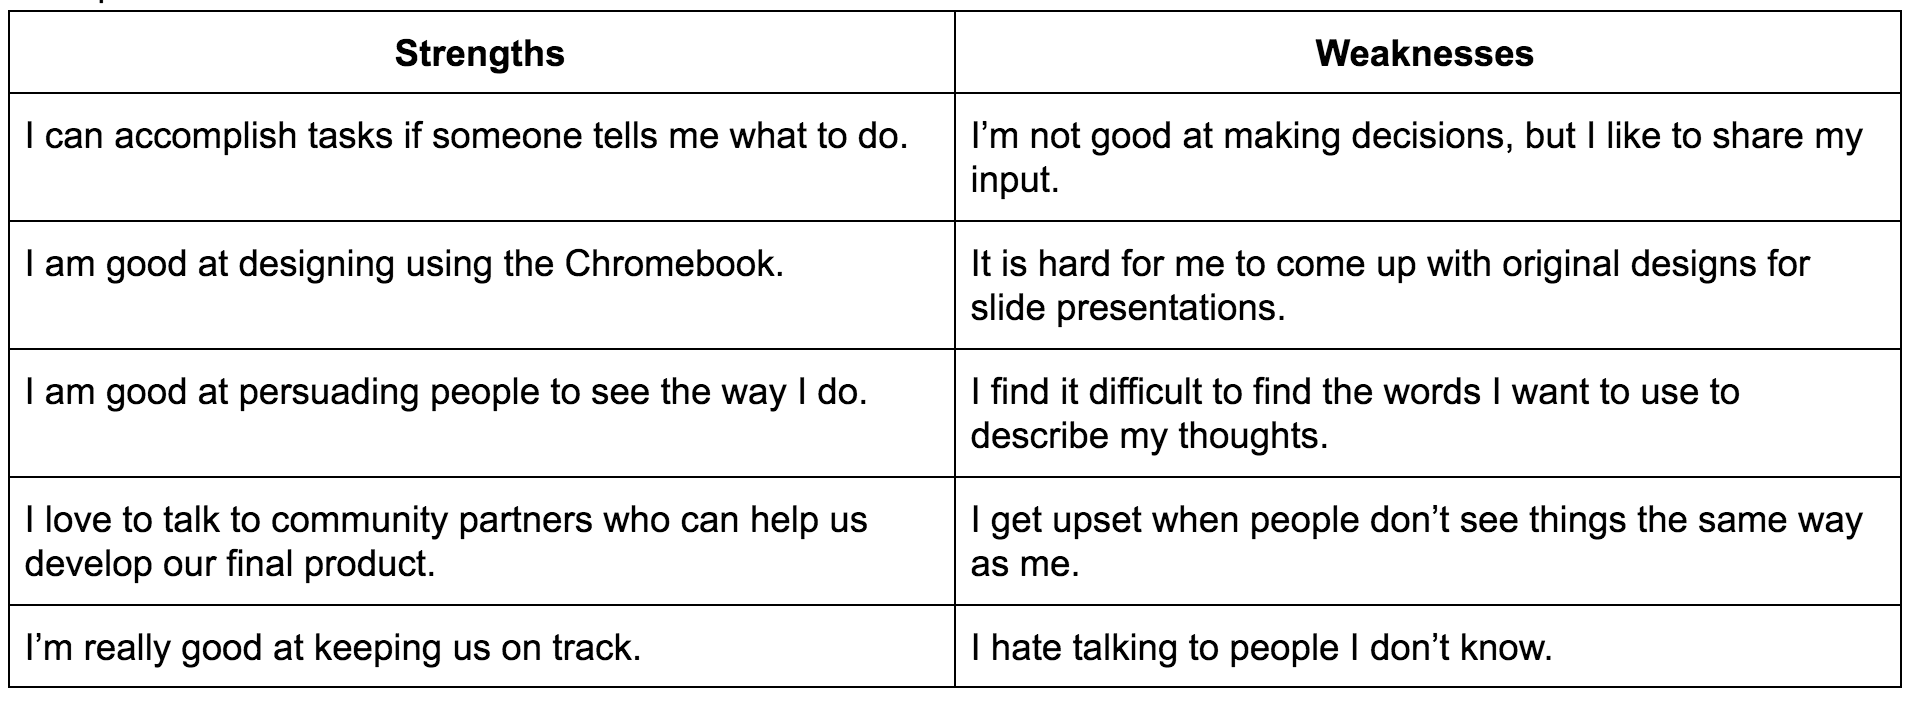 Group Contracts-Strengths & Weaknesses Table.png